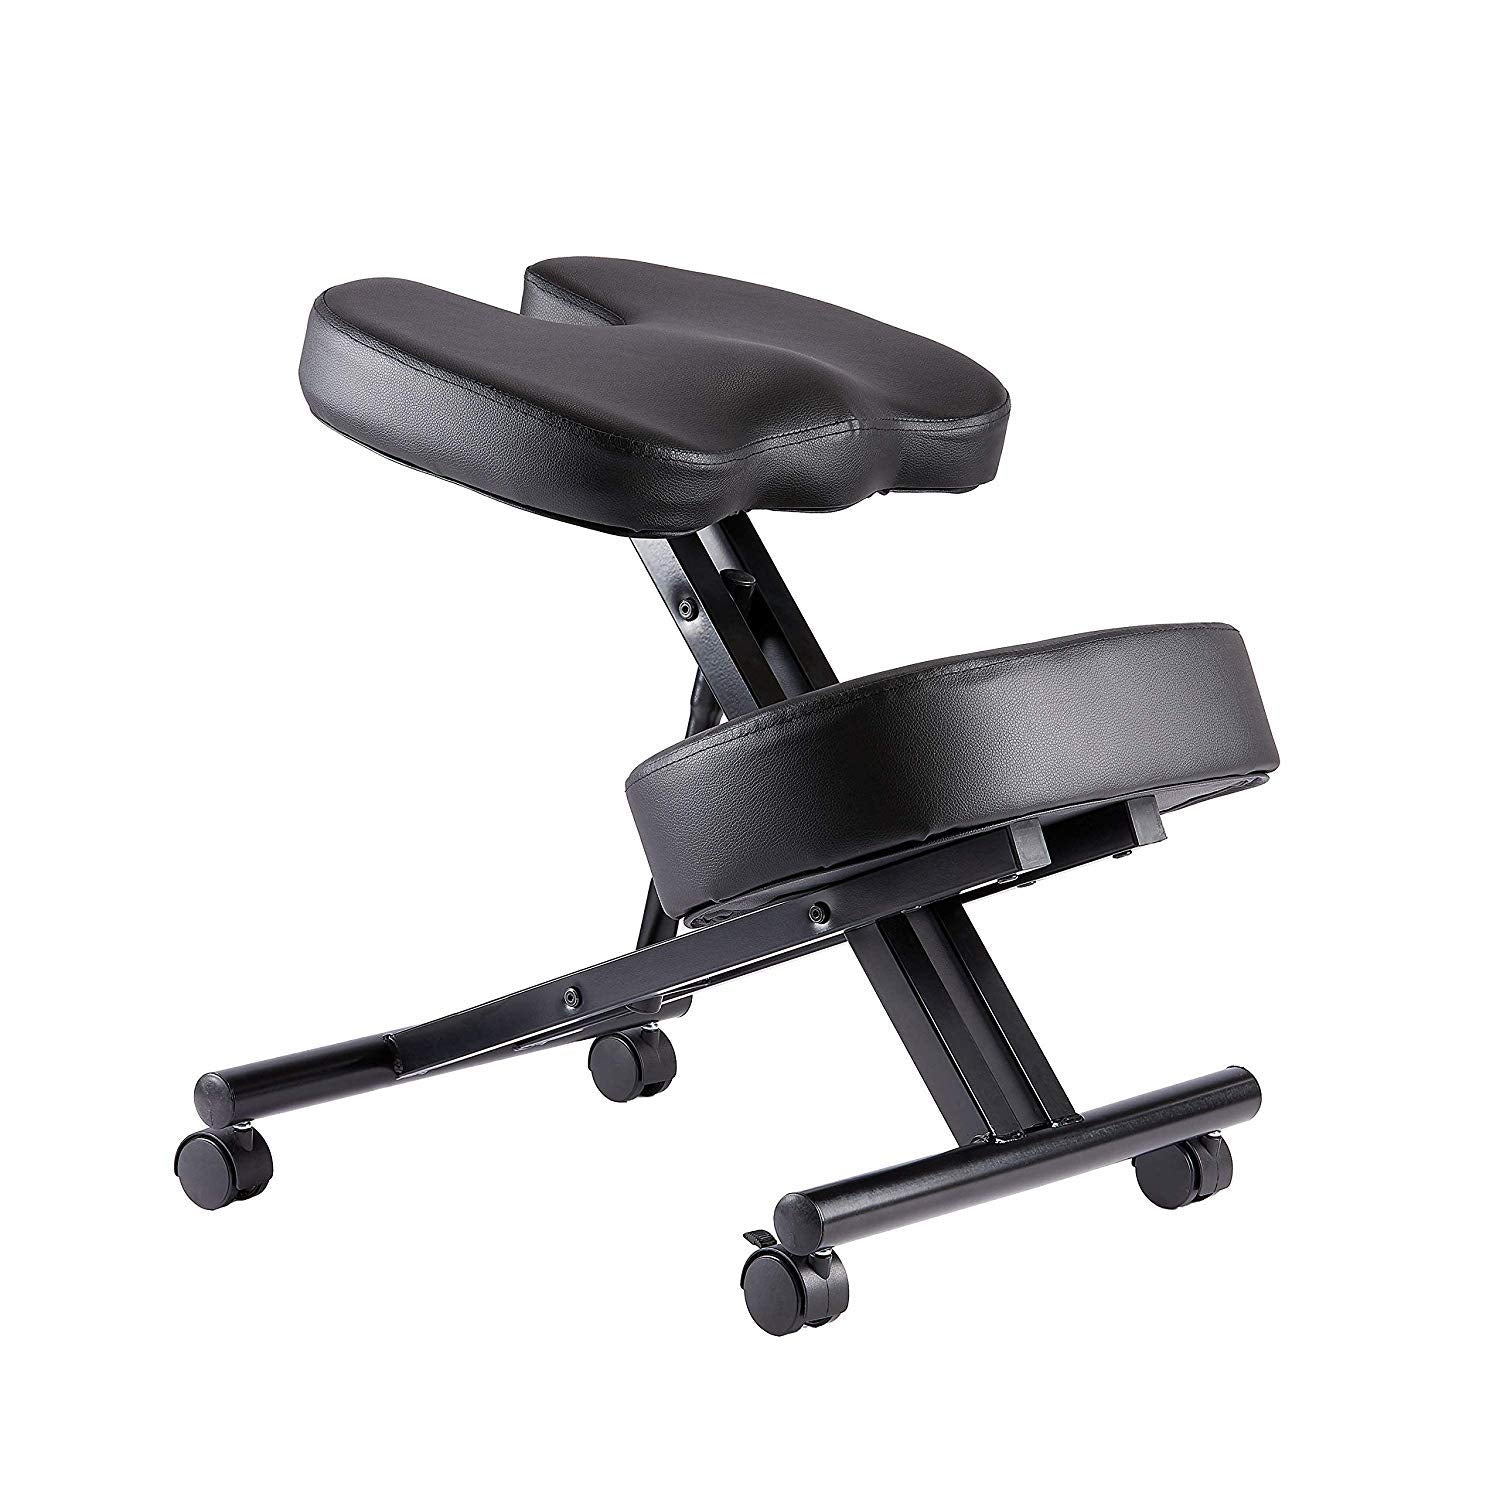 Kneeling Chair with Coccyx Seat, Choose Faux Leather or Mesh, Kneeling Chair for Better Posture.